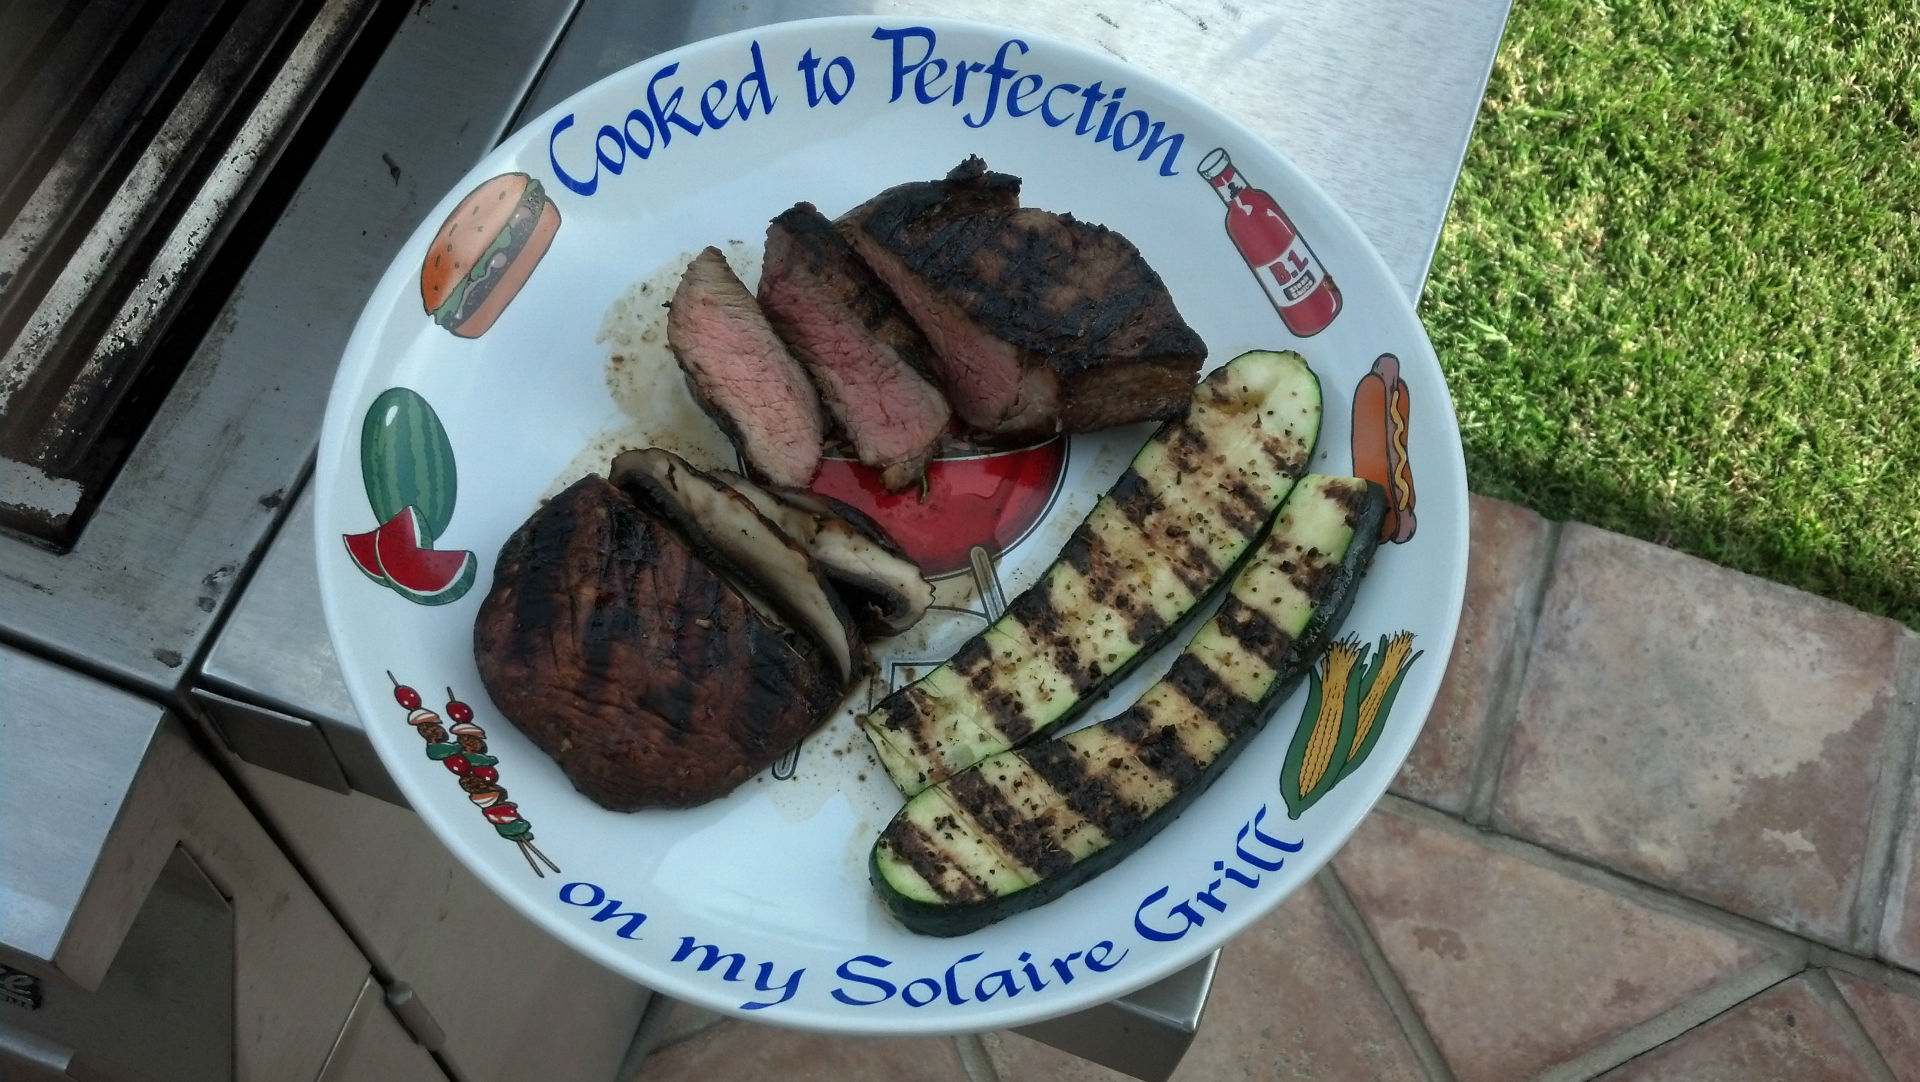 finished sous vide steaks with perfect grill marks